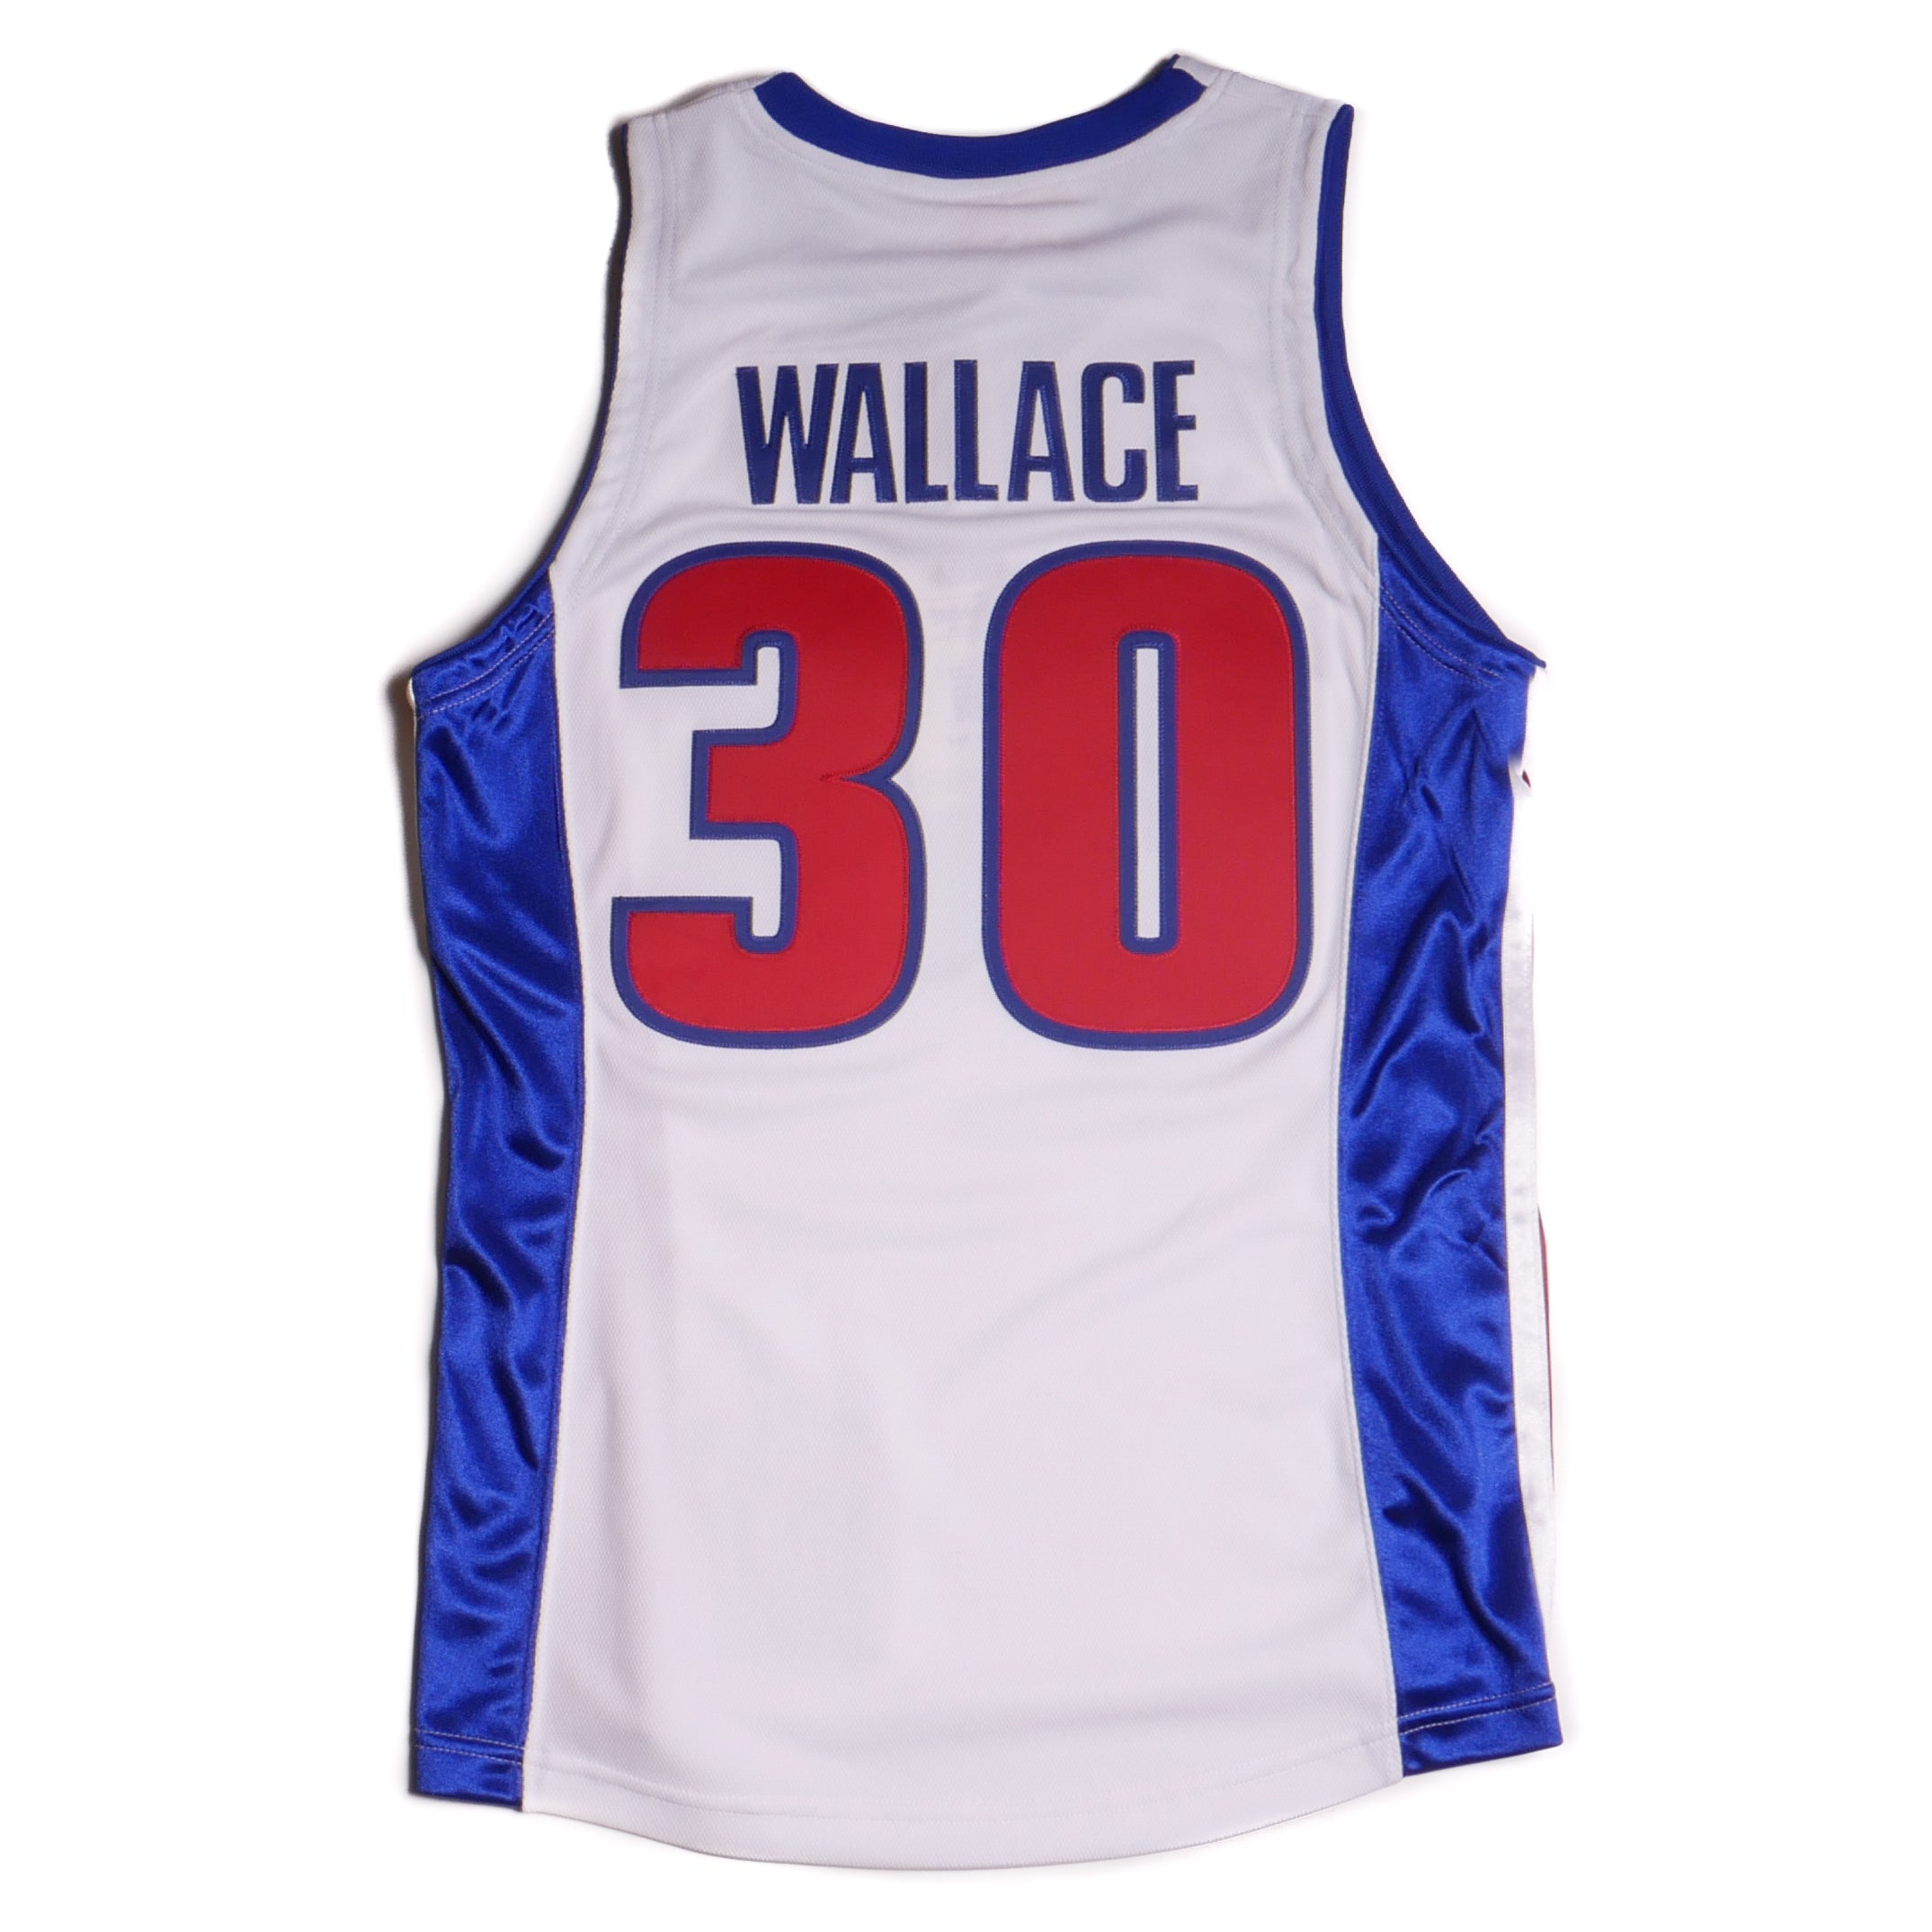 finest selection 69cbd 06f0f Mitchell & Ness Authentic Detroit Pistons Jersey 03-04 Finals Wallace